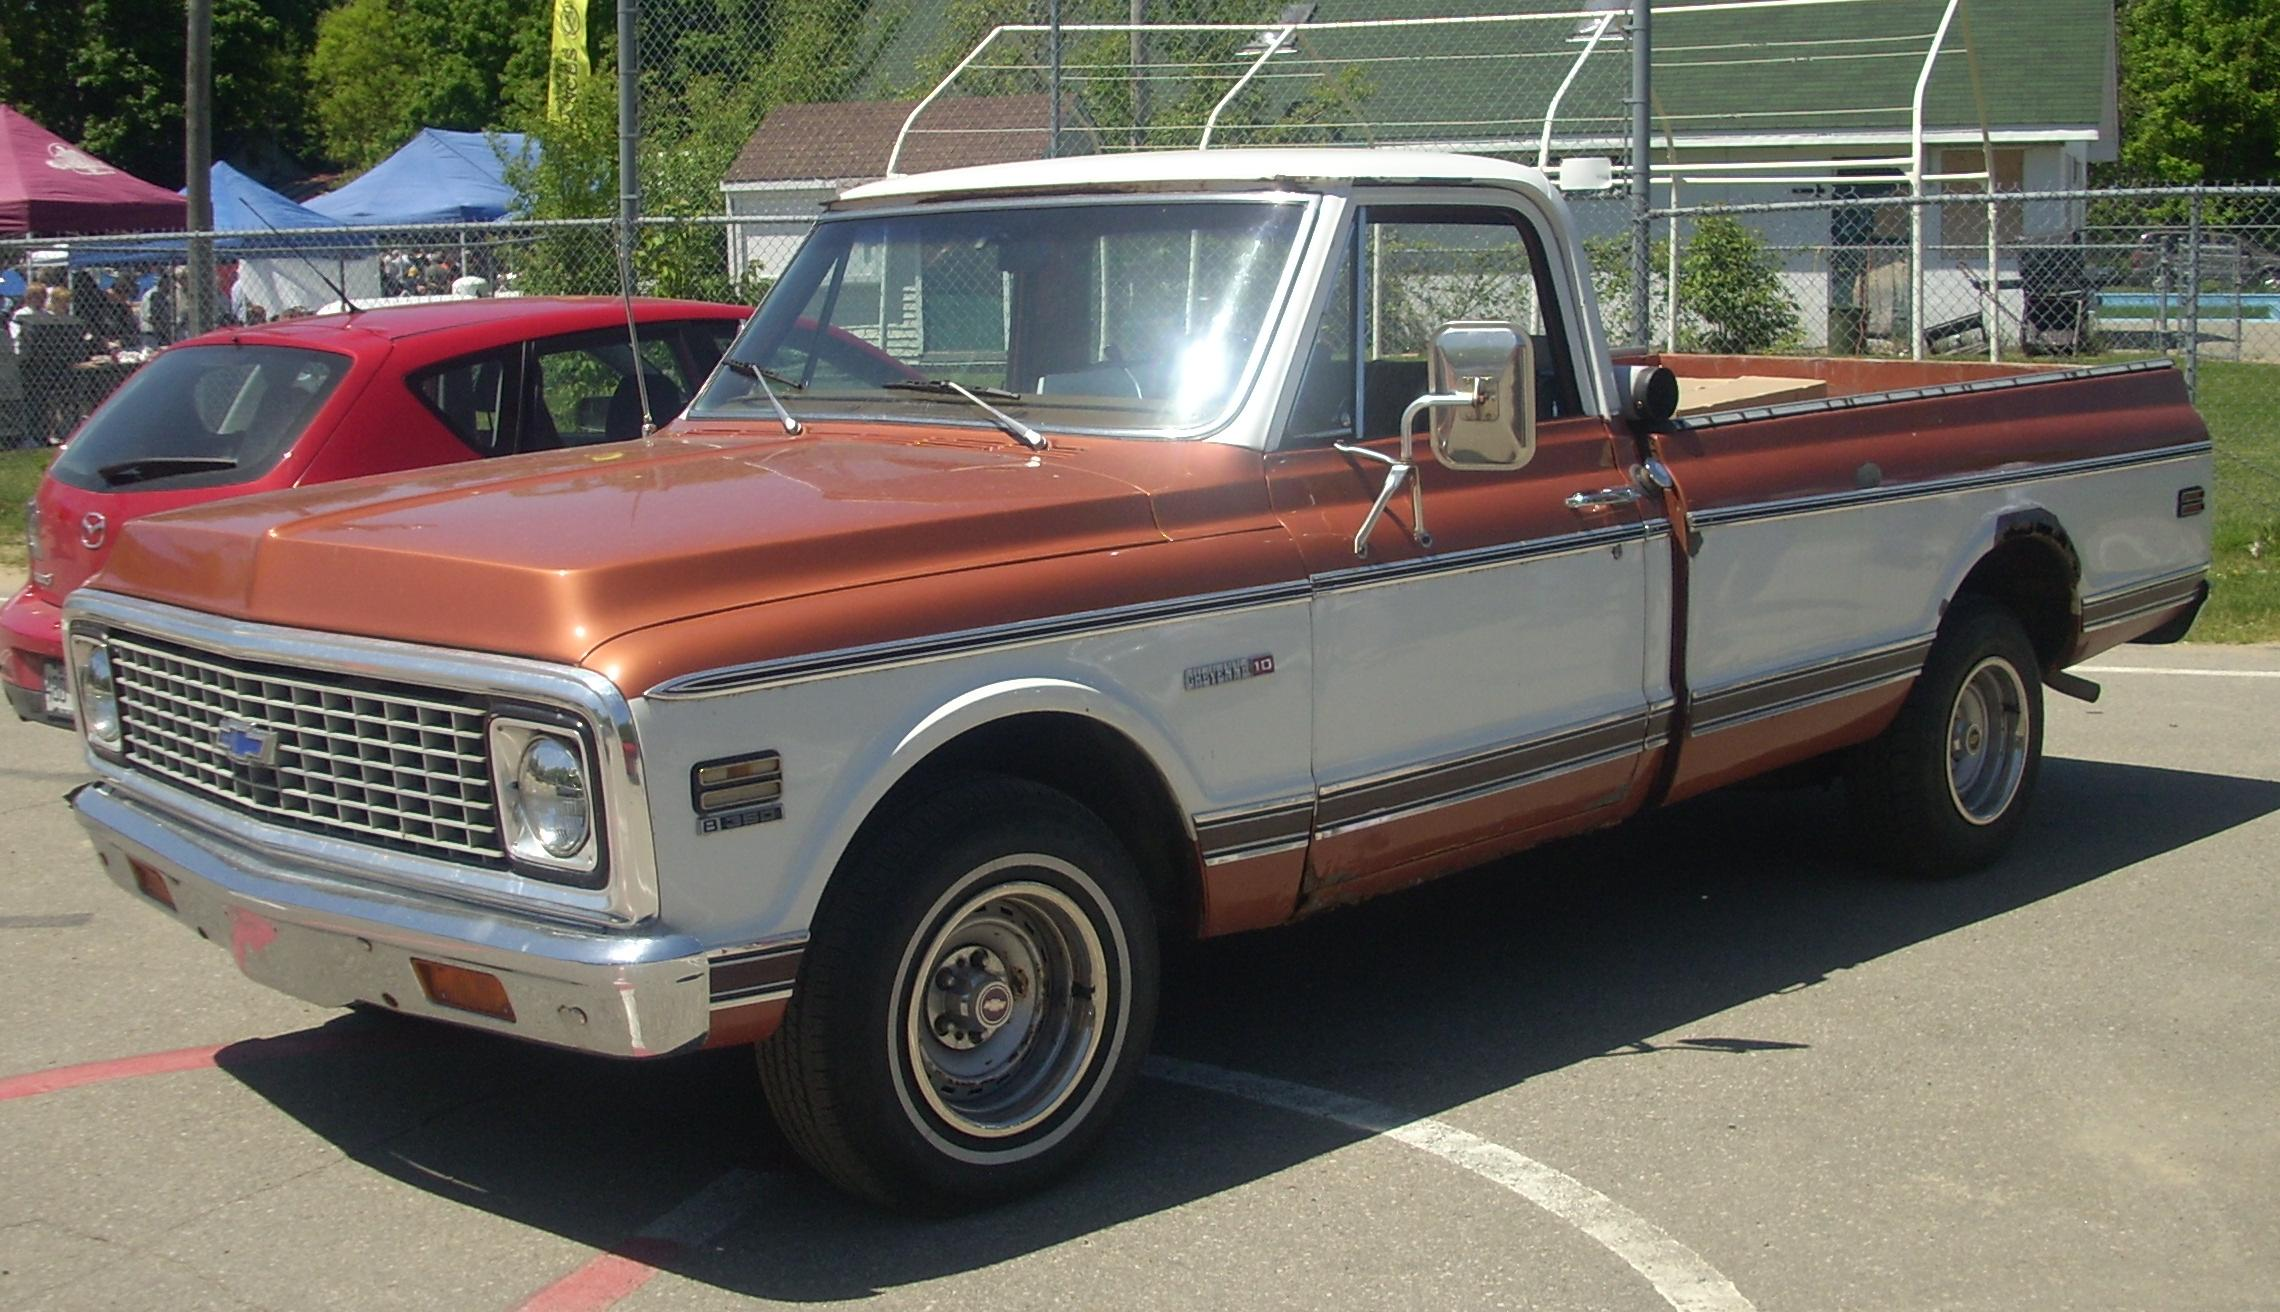 1979 Chevrolet C20 K20 Information And Photos Momentcar 79 Chevy Cheyenne Starter Wiring Diagram 6